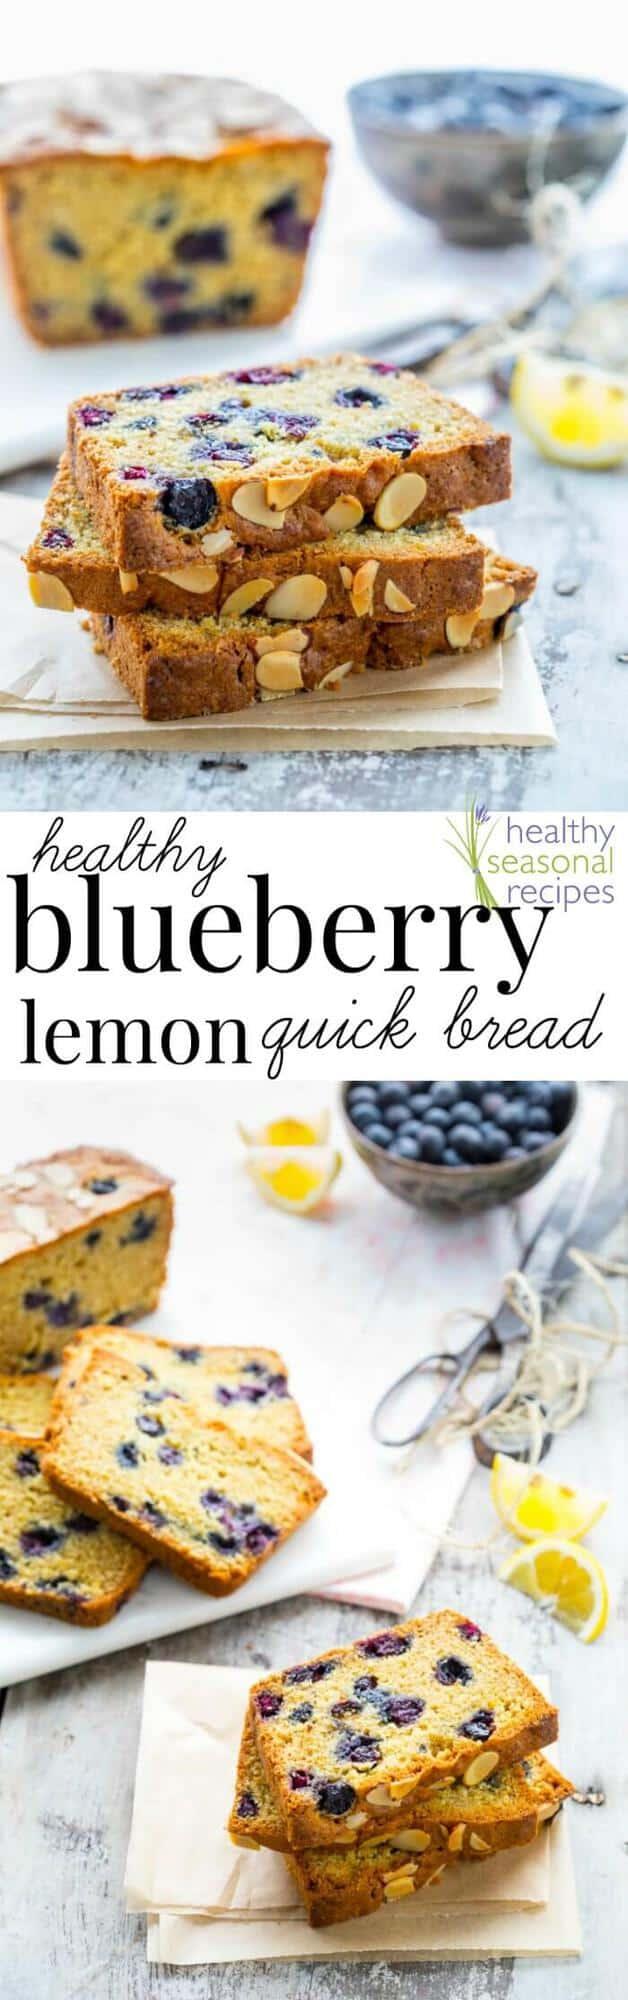 This Healthy Blueberry Lemon Quick Bread is an absolute must-bake recipe! It is sweet and lemony and bursting with blueberries. Healthy Seasonal Recipes by Katie Webster | #blueberry #summer #fresh #bread #lemon #healthy